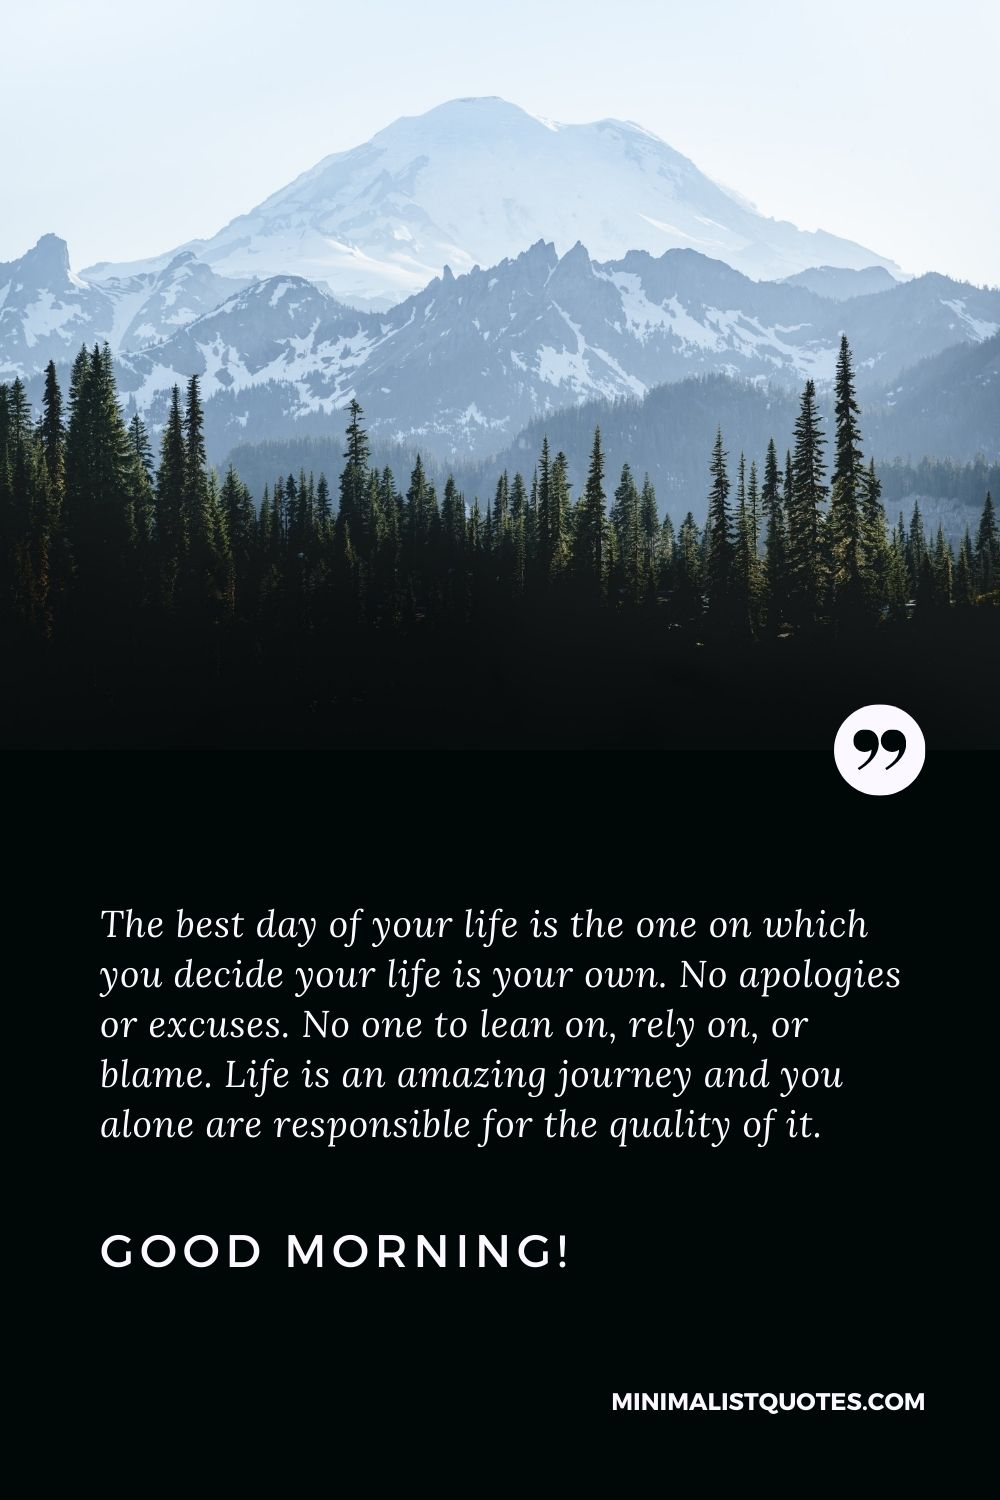 Deep good morning Quote: The best day of your life is the one on which you decide your life is your own. No apologies or excuses. No one to lean on, rely on, or blame. Life is an amazing journey and you alone are responsible for the quality of it. Good Morning!